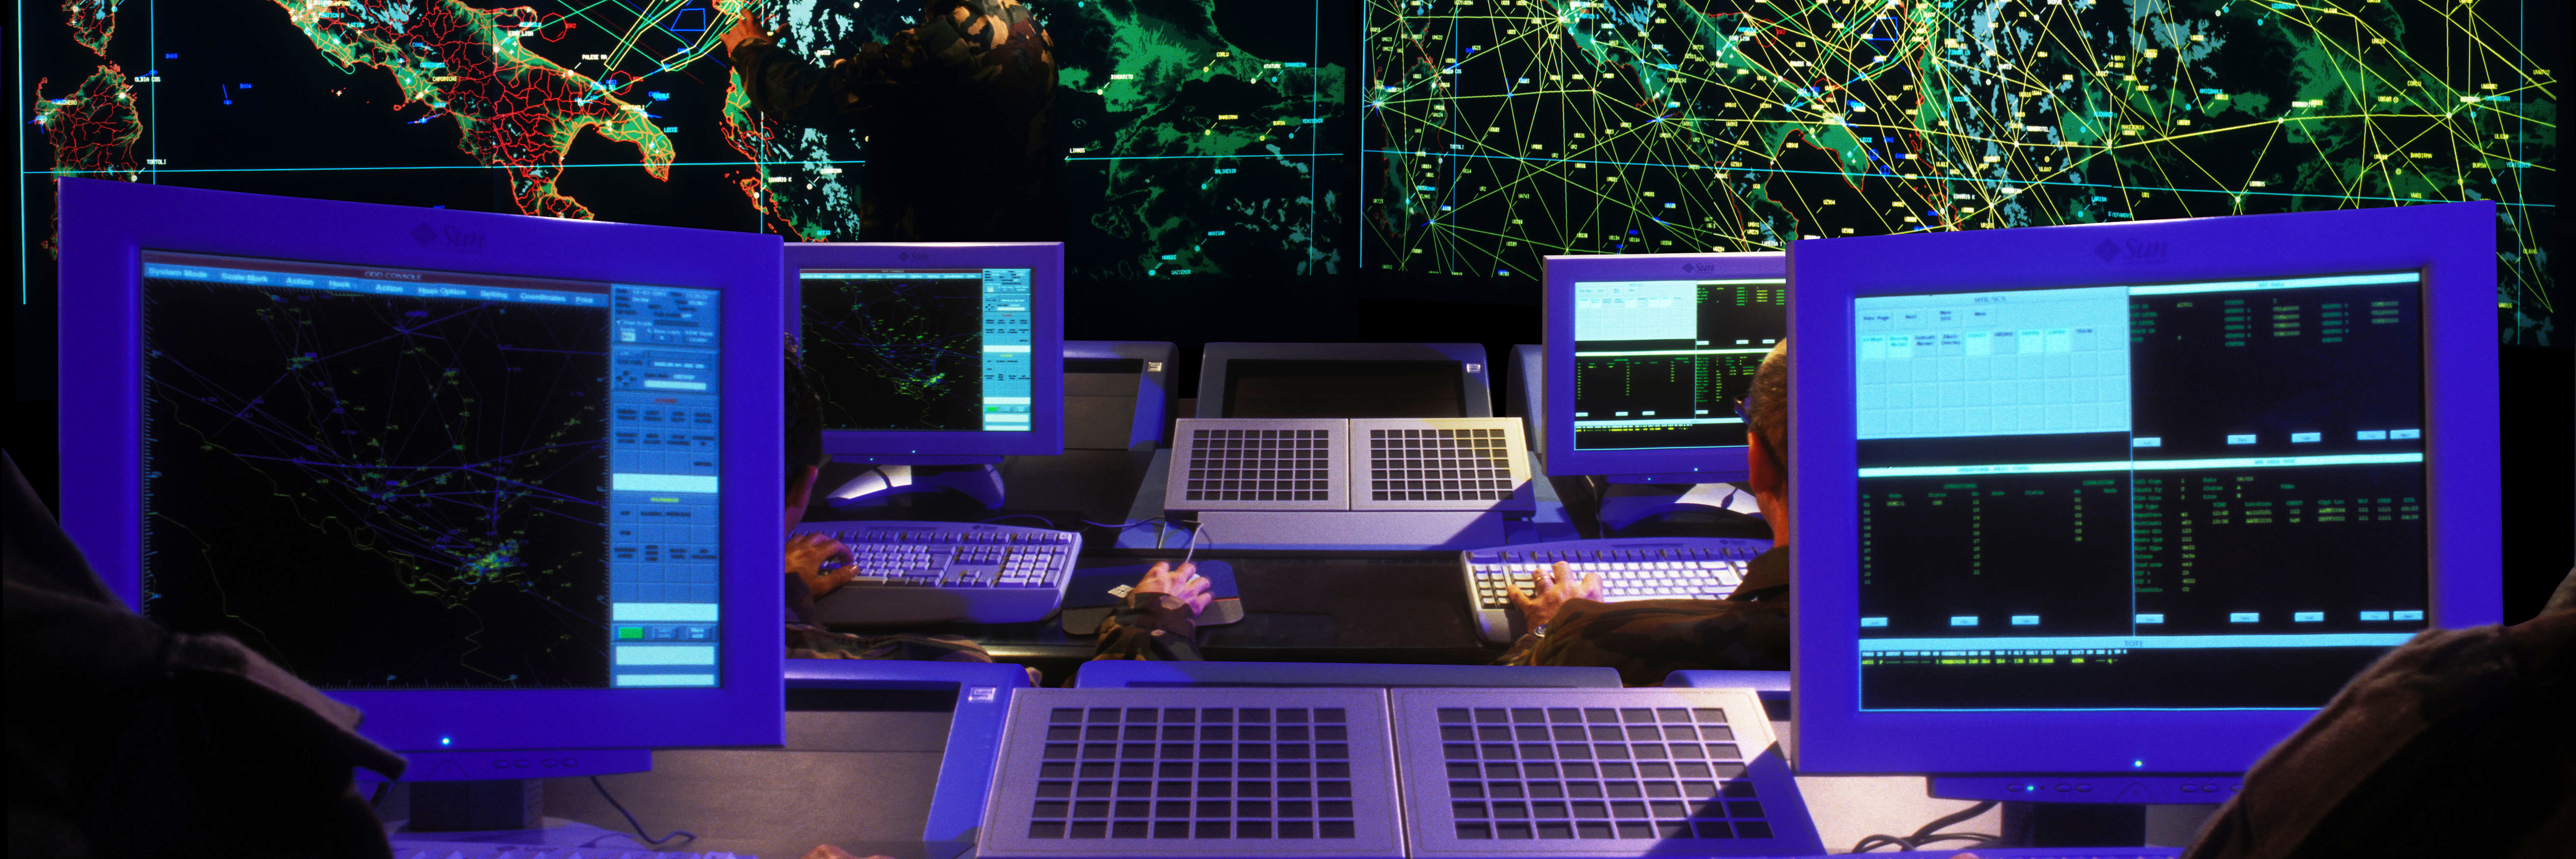 EDA supports NATO CCD COE 'Locked Shields' cyber defence exercise